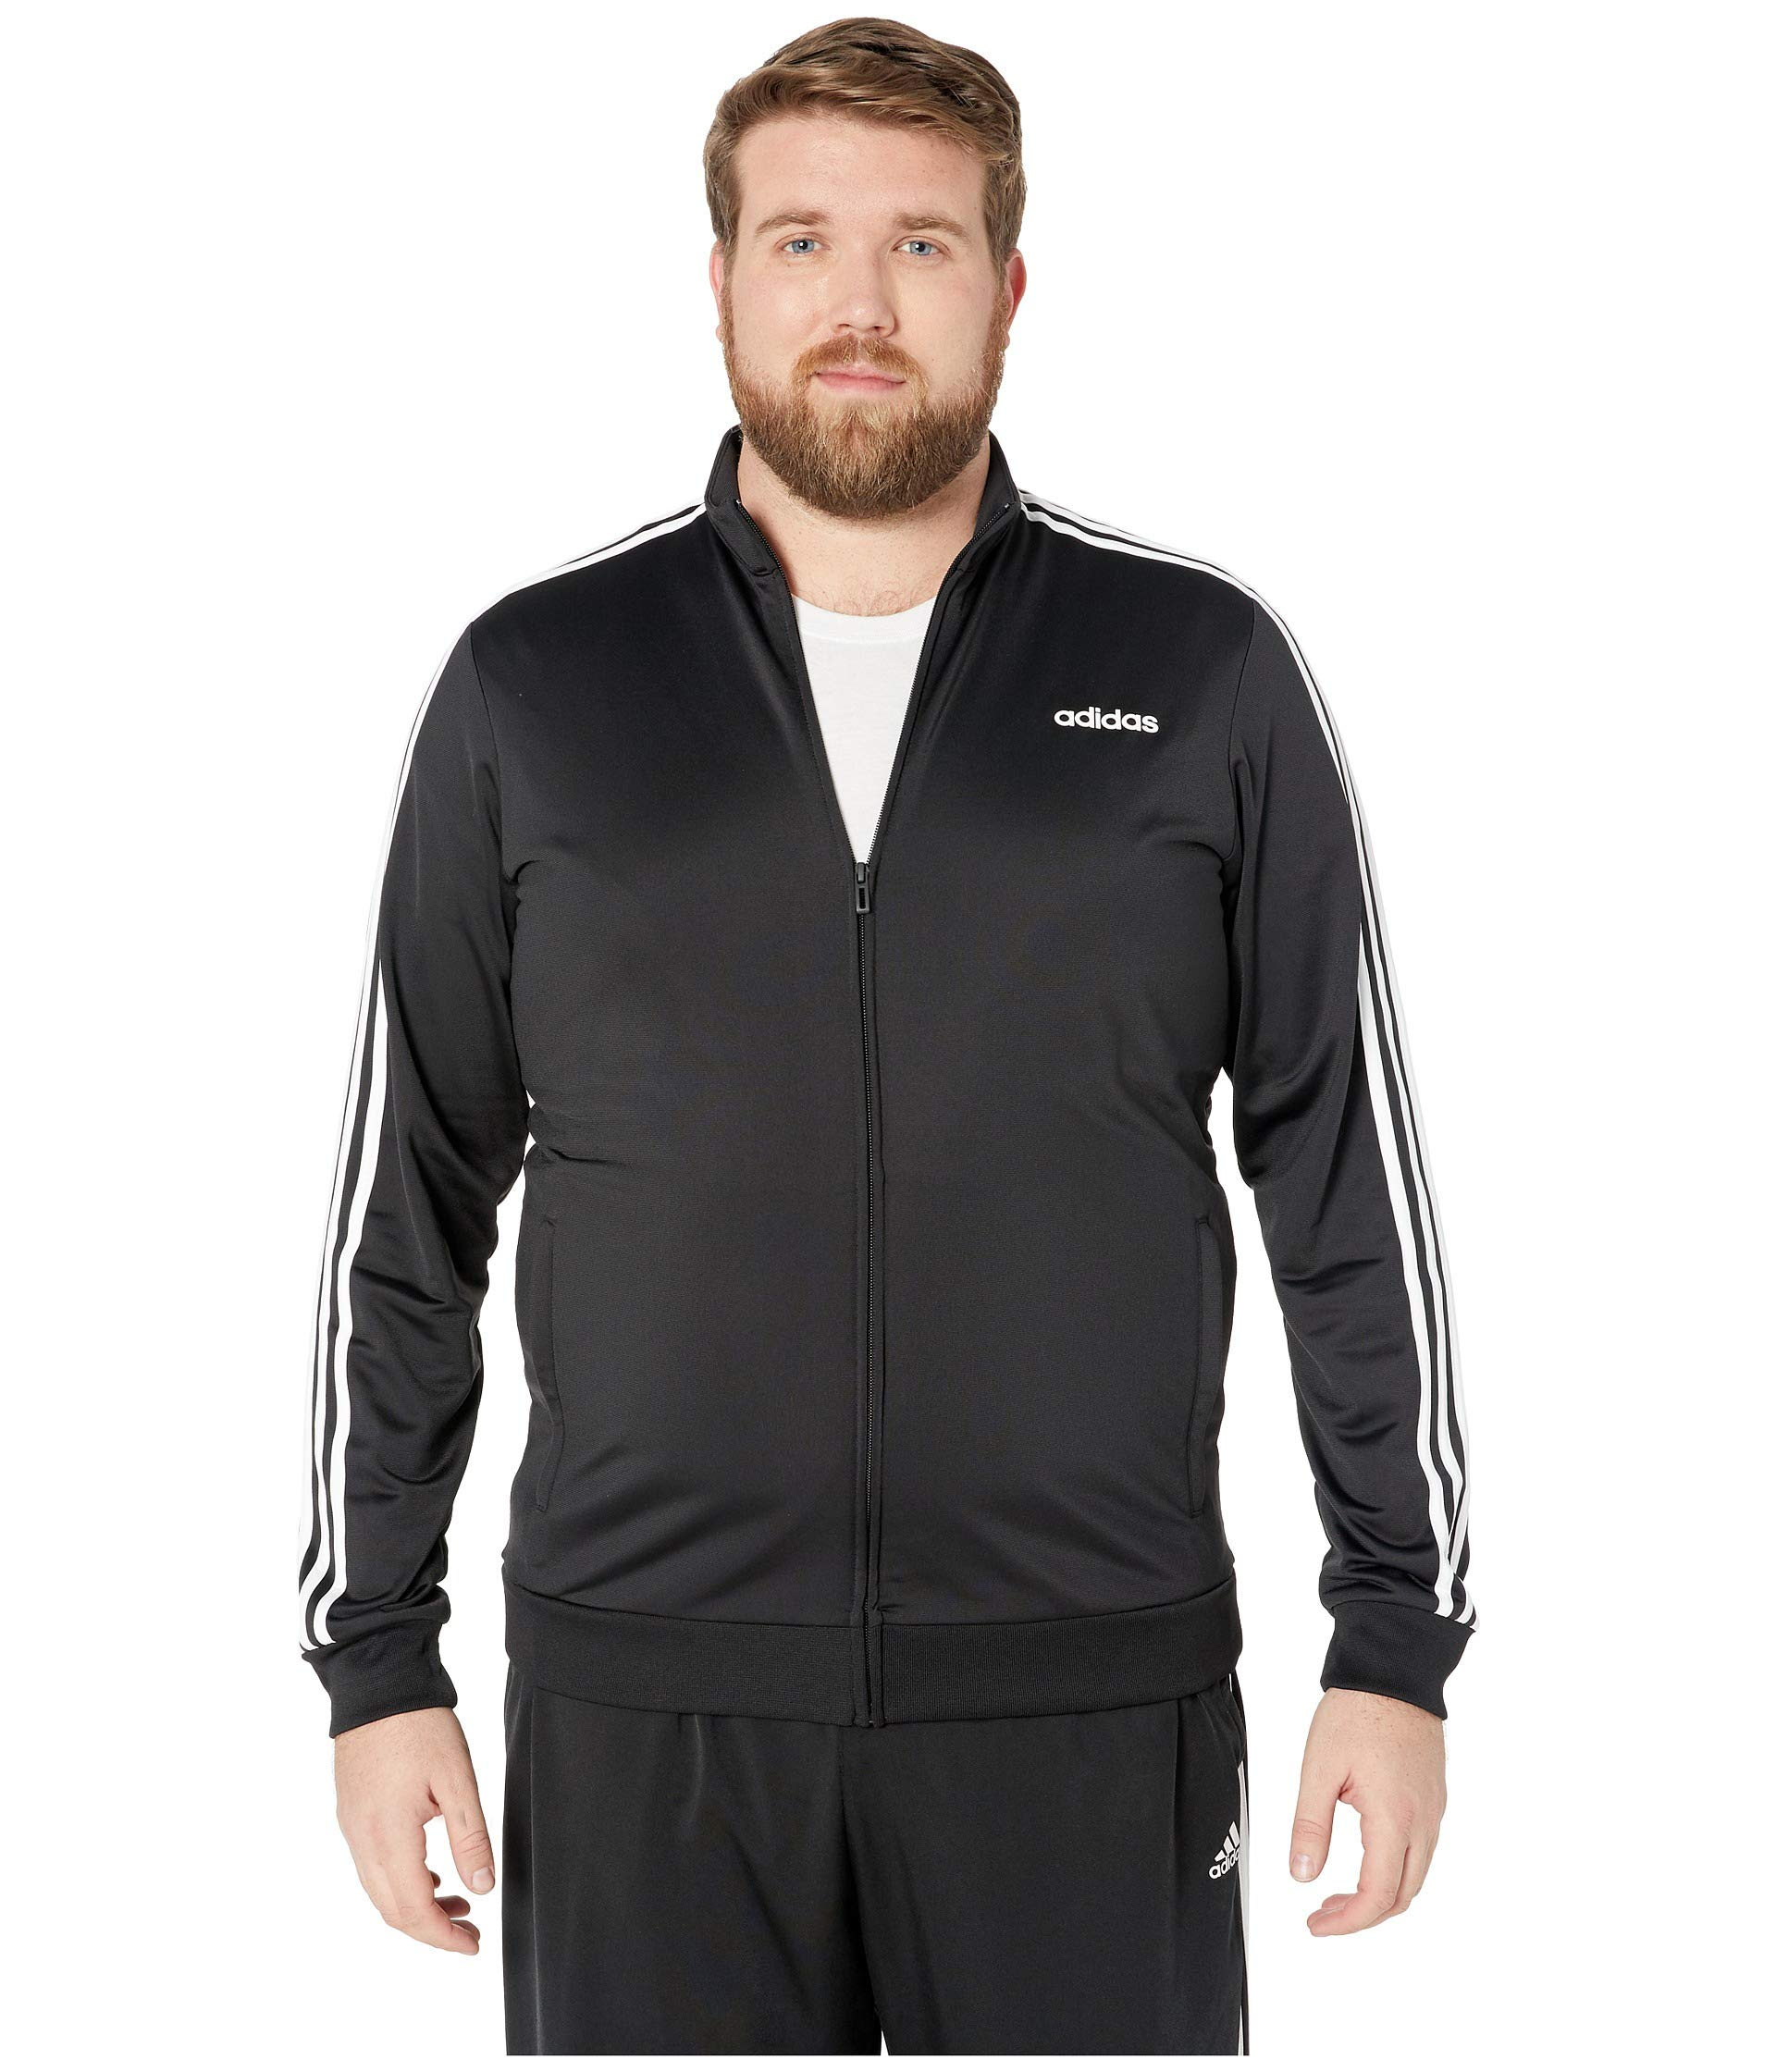 adidas Essentials Men's 3-Stripes Tricot Track Jacket, Black/White, Large/Tall by adidas